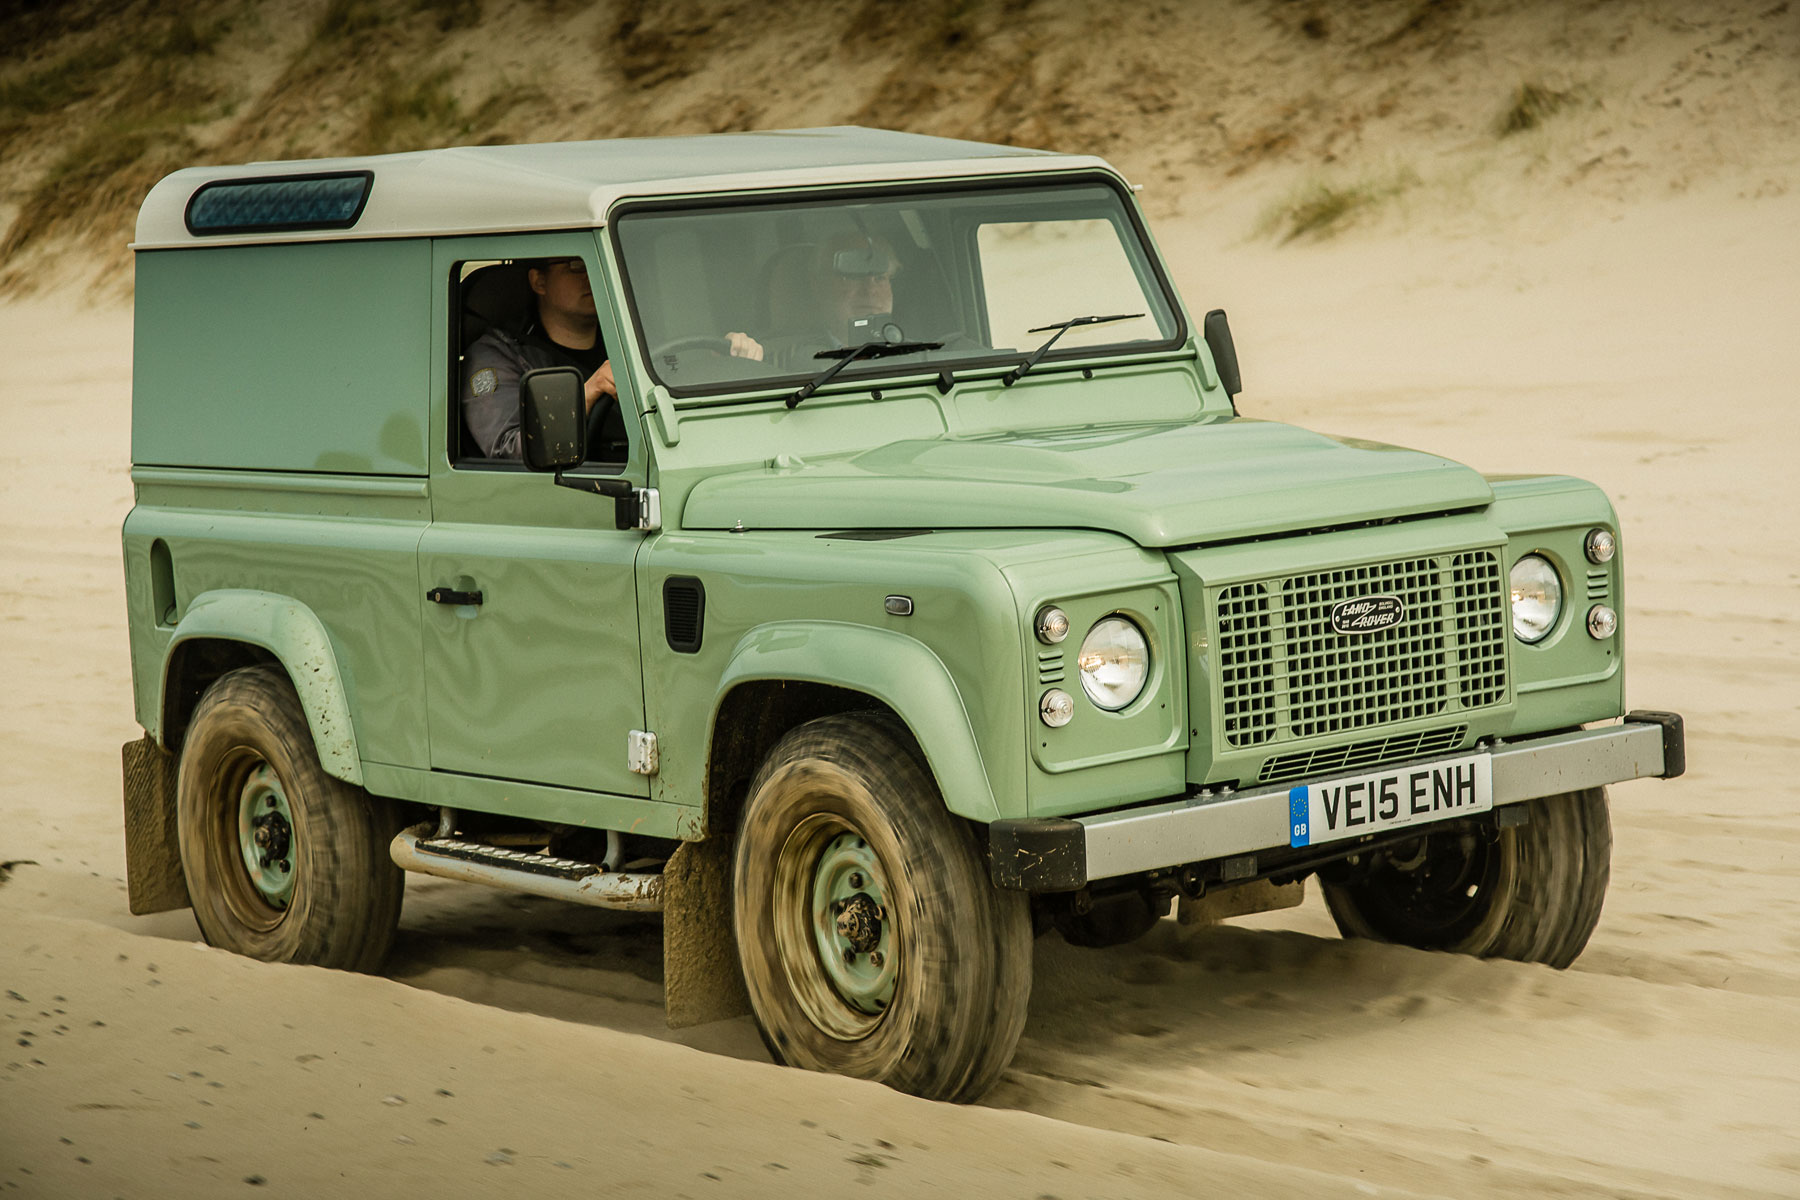 Worksheet. Land Rover Defender Heritage edition review 2015 first drive